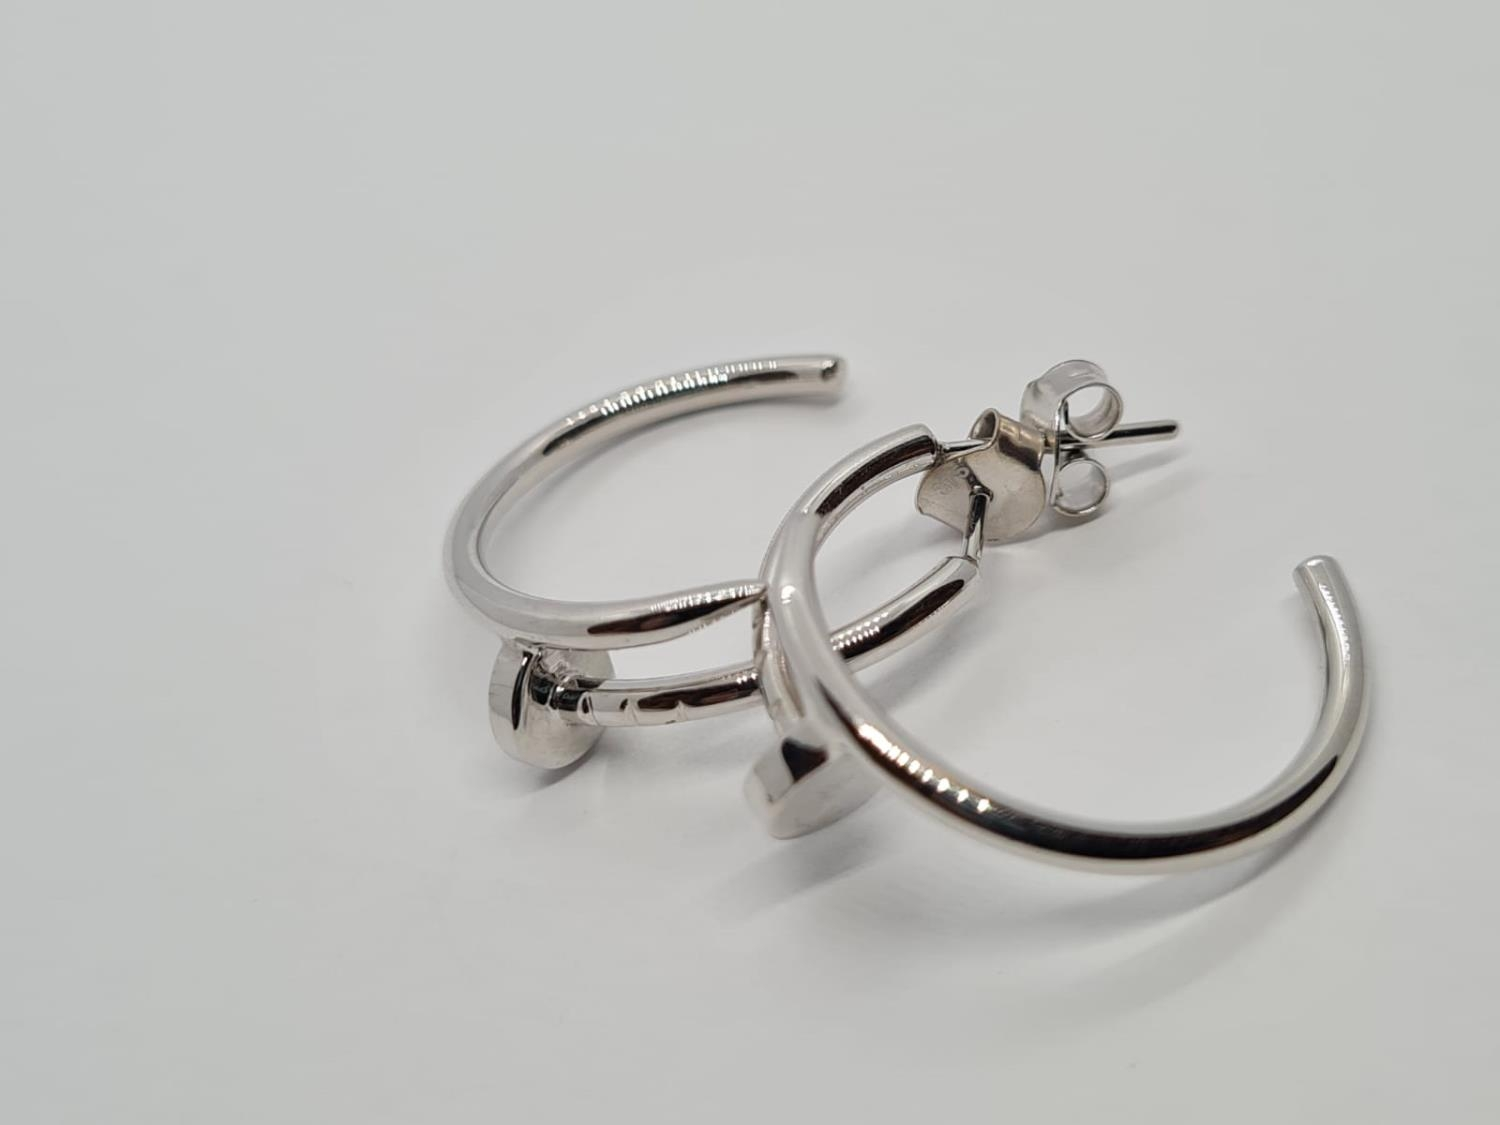 PAIR OF 9CT WHITE GOLD CARTIER STYLE EARRINGS, WEIGHT 5.5G - Image 2 of 4